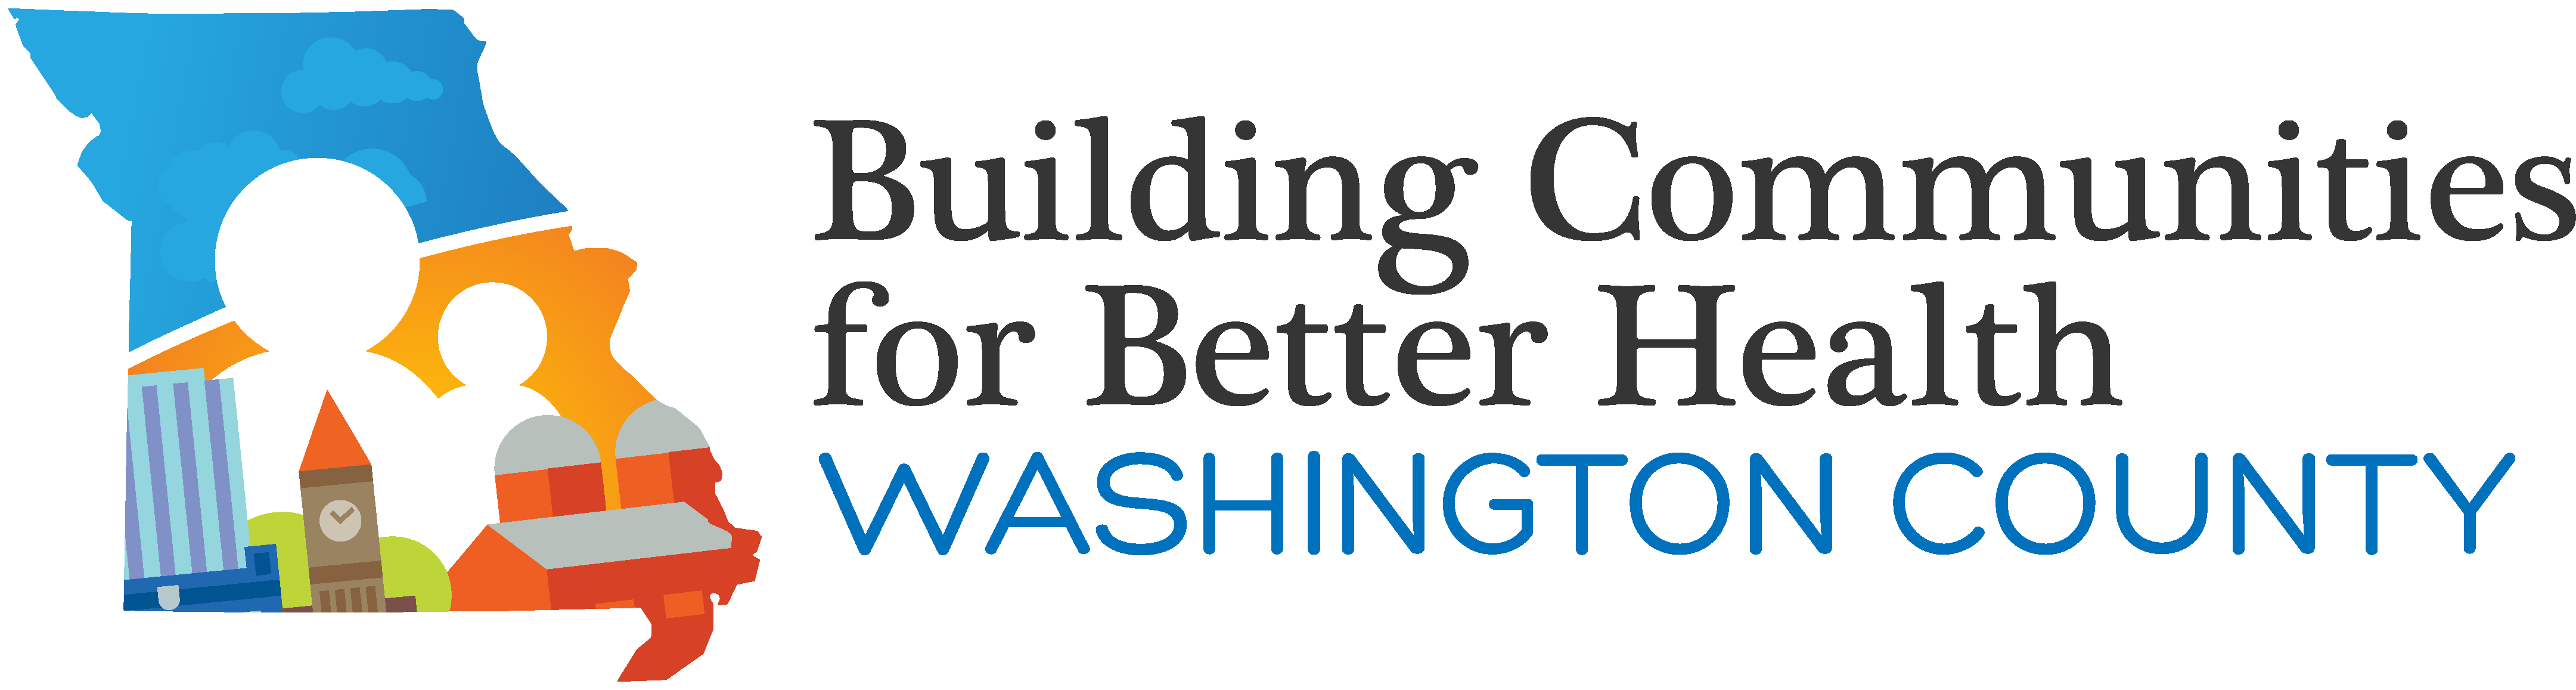 Building Communities for Better Health Logo